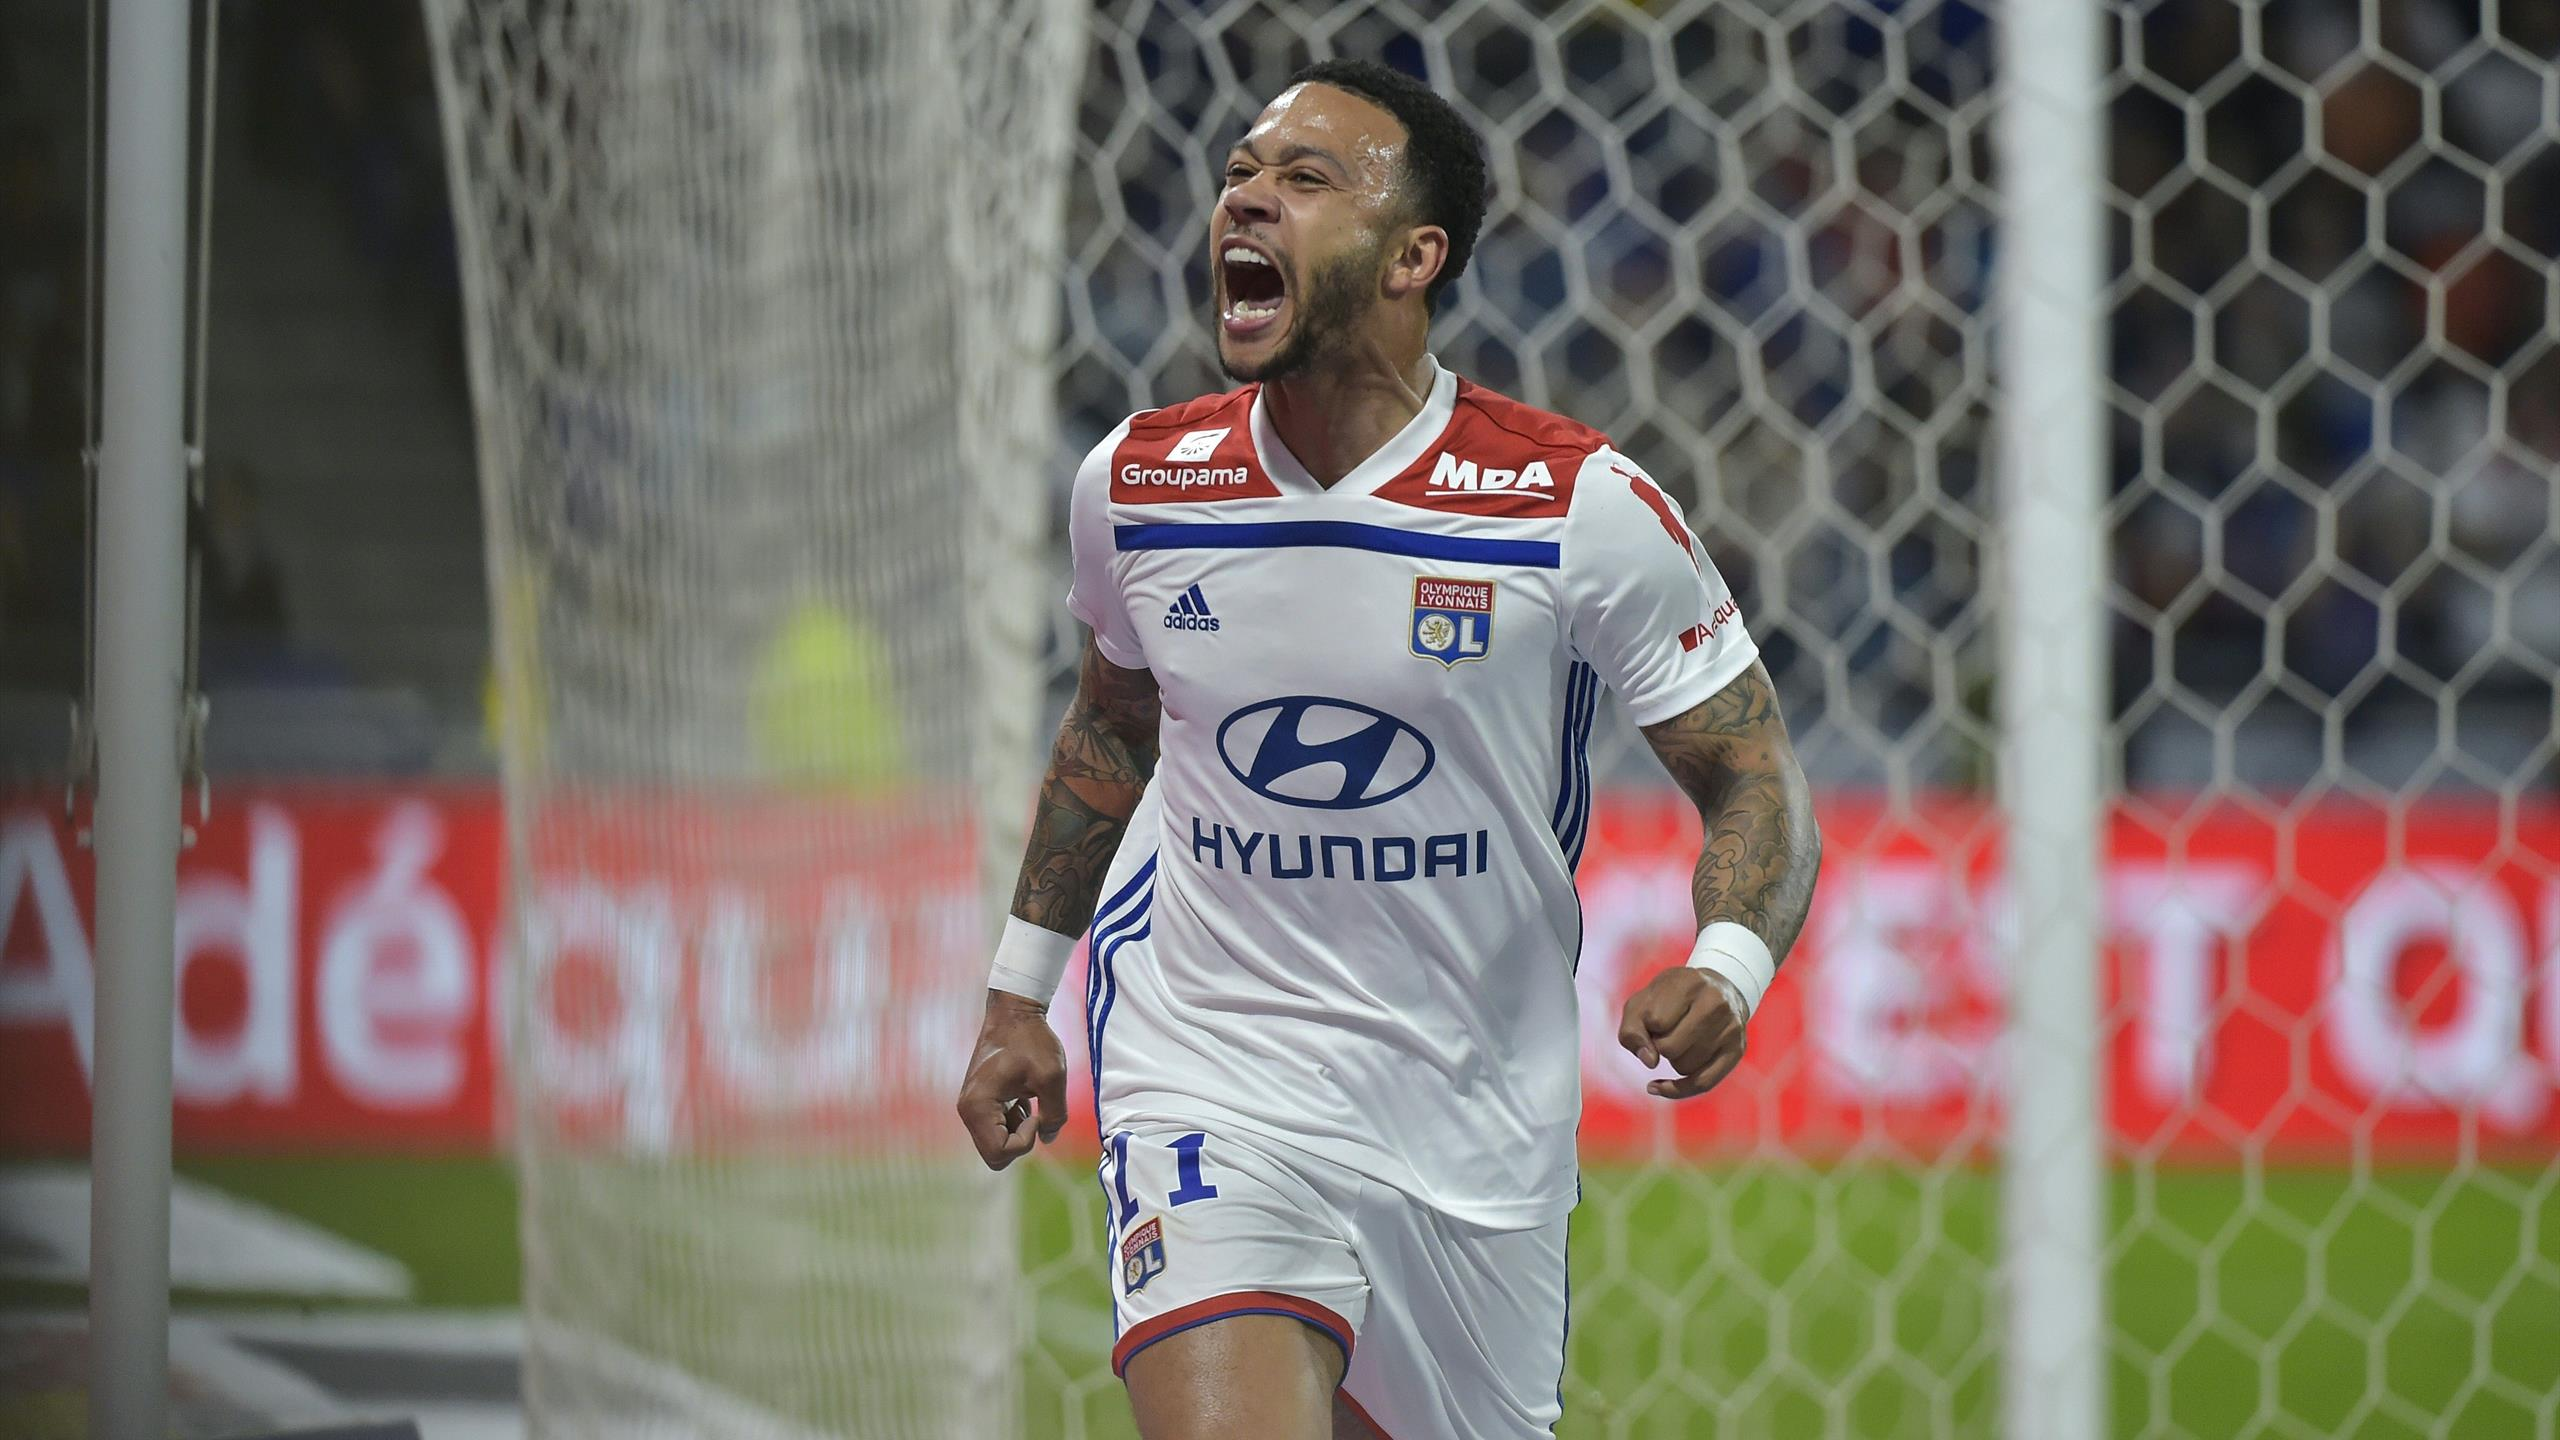 lyon in third after angers win eurosport